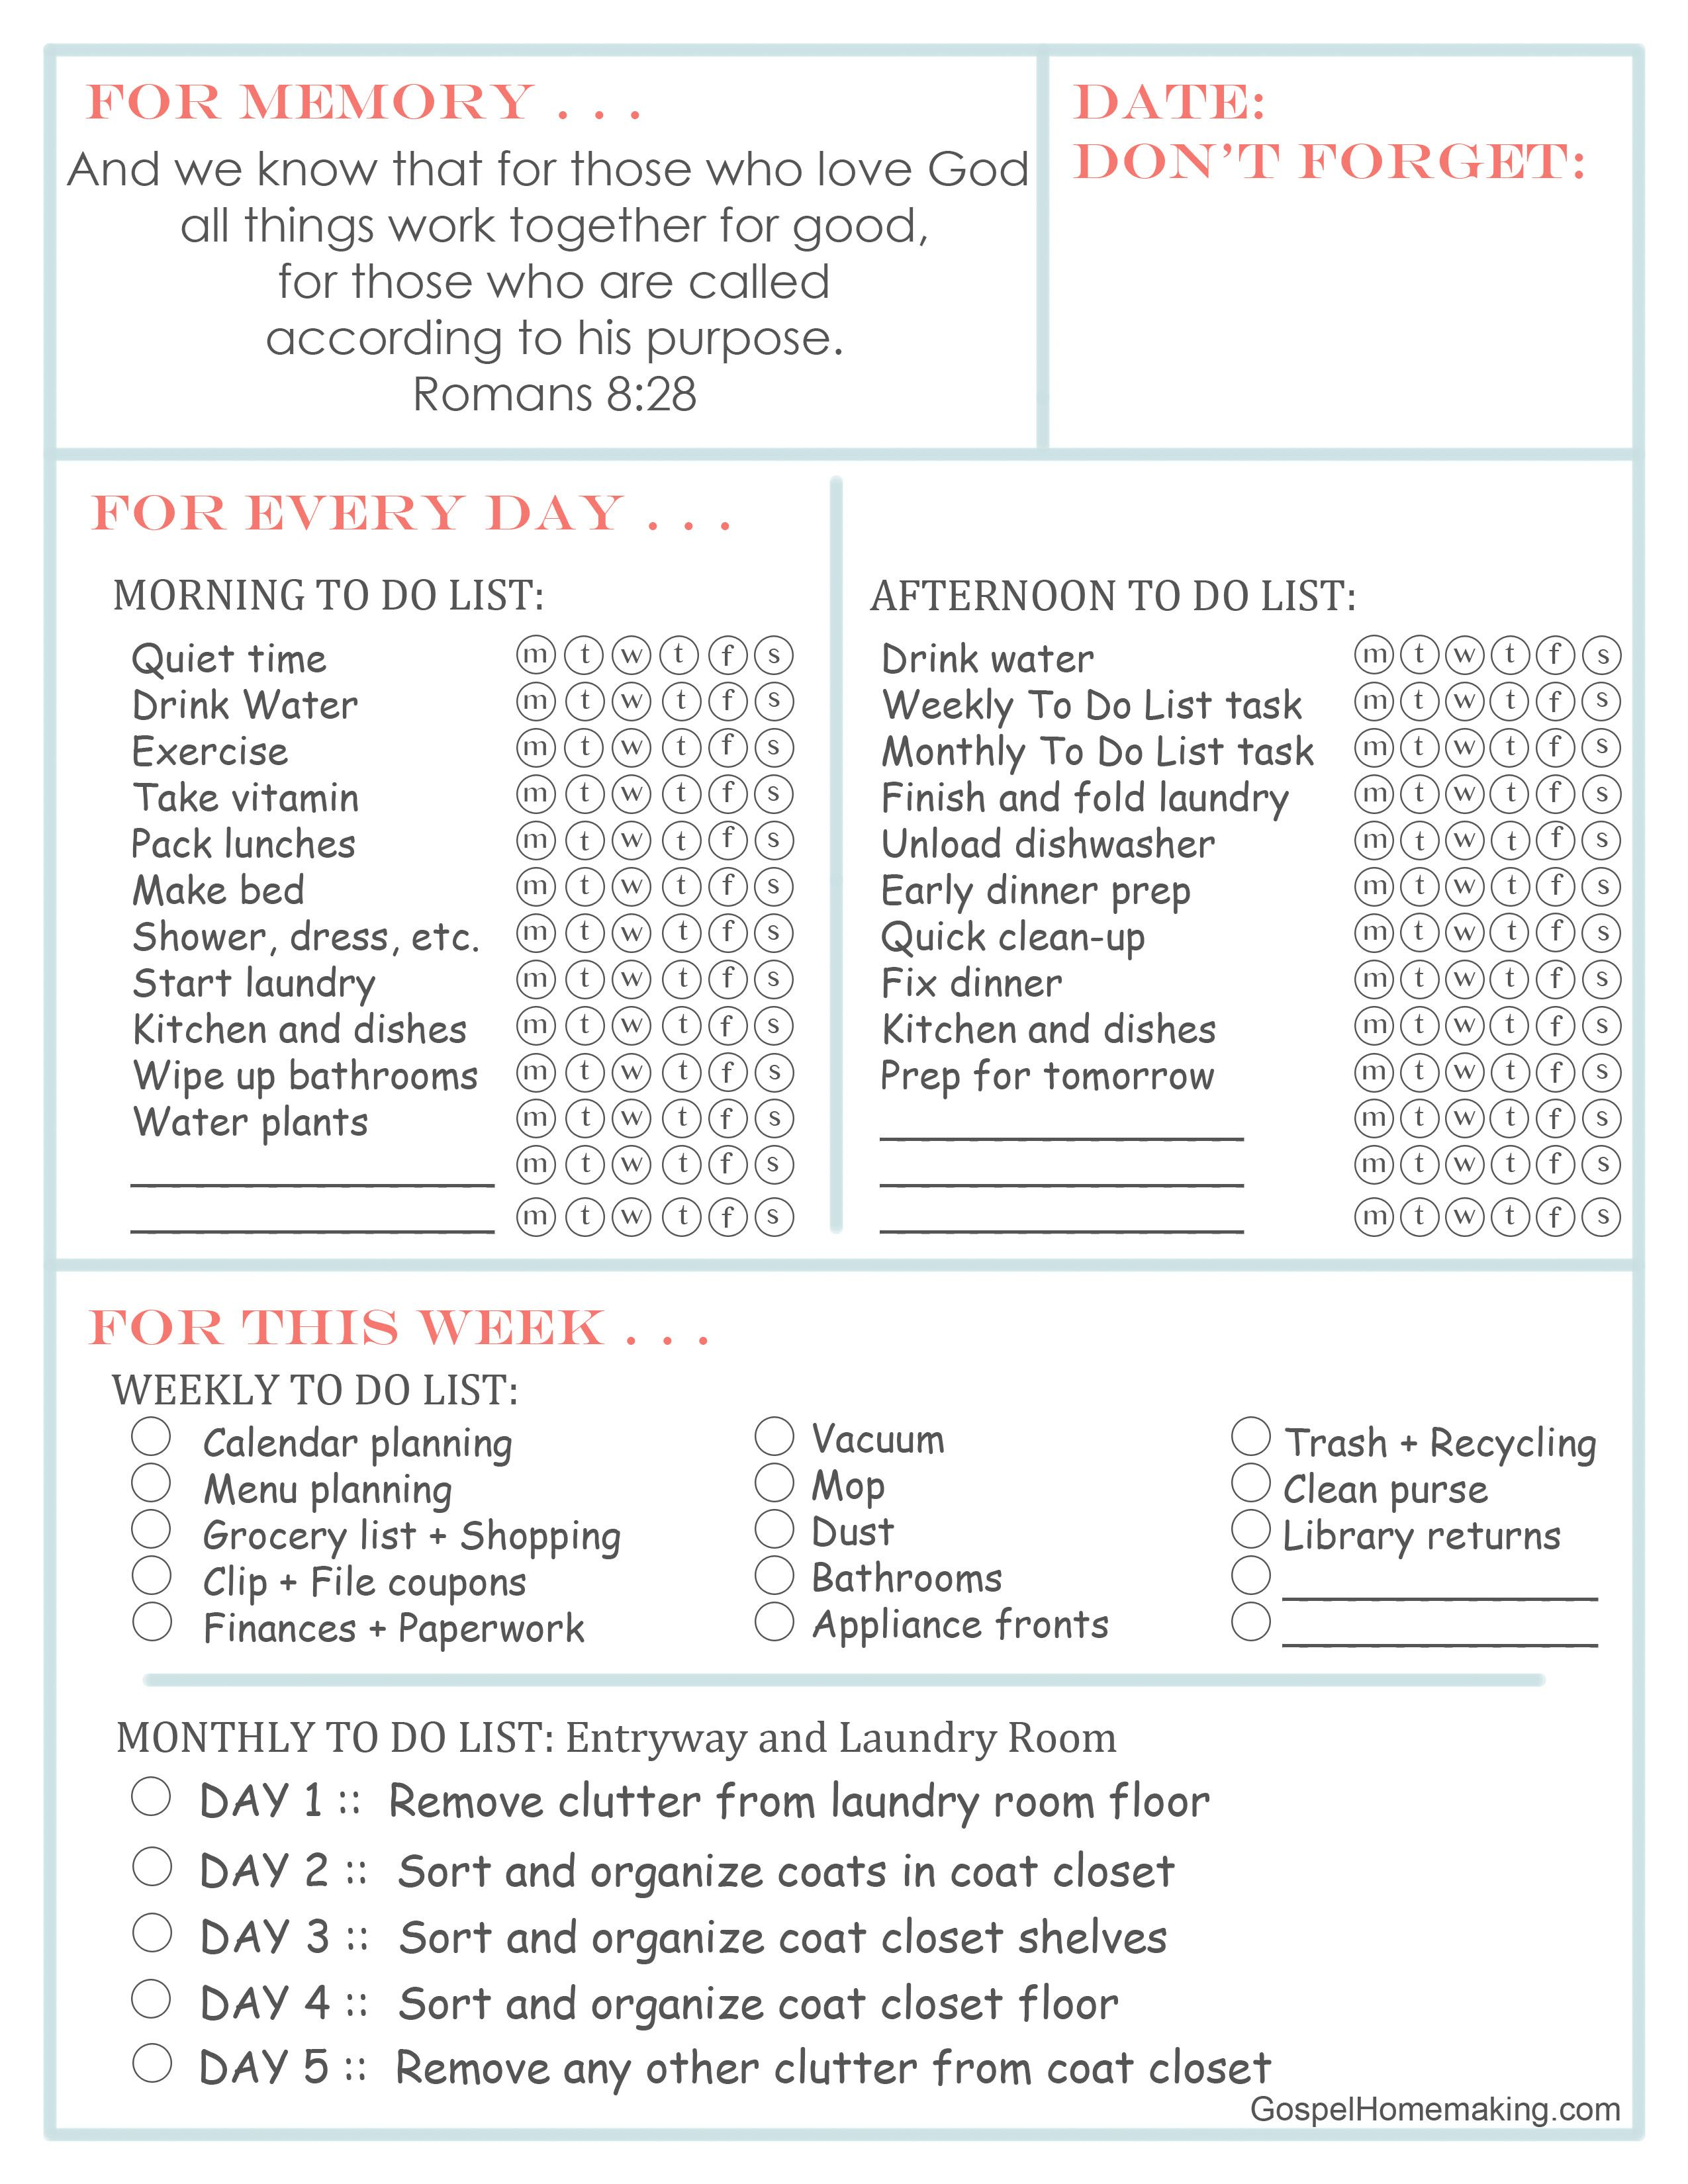 Printable Daily To Do List Weekly Plan Week 20